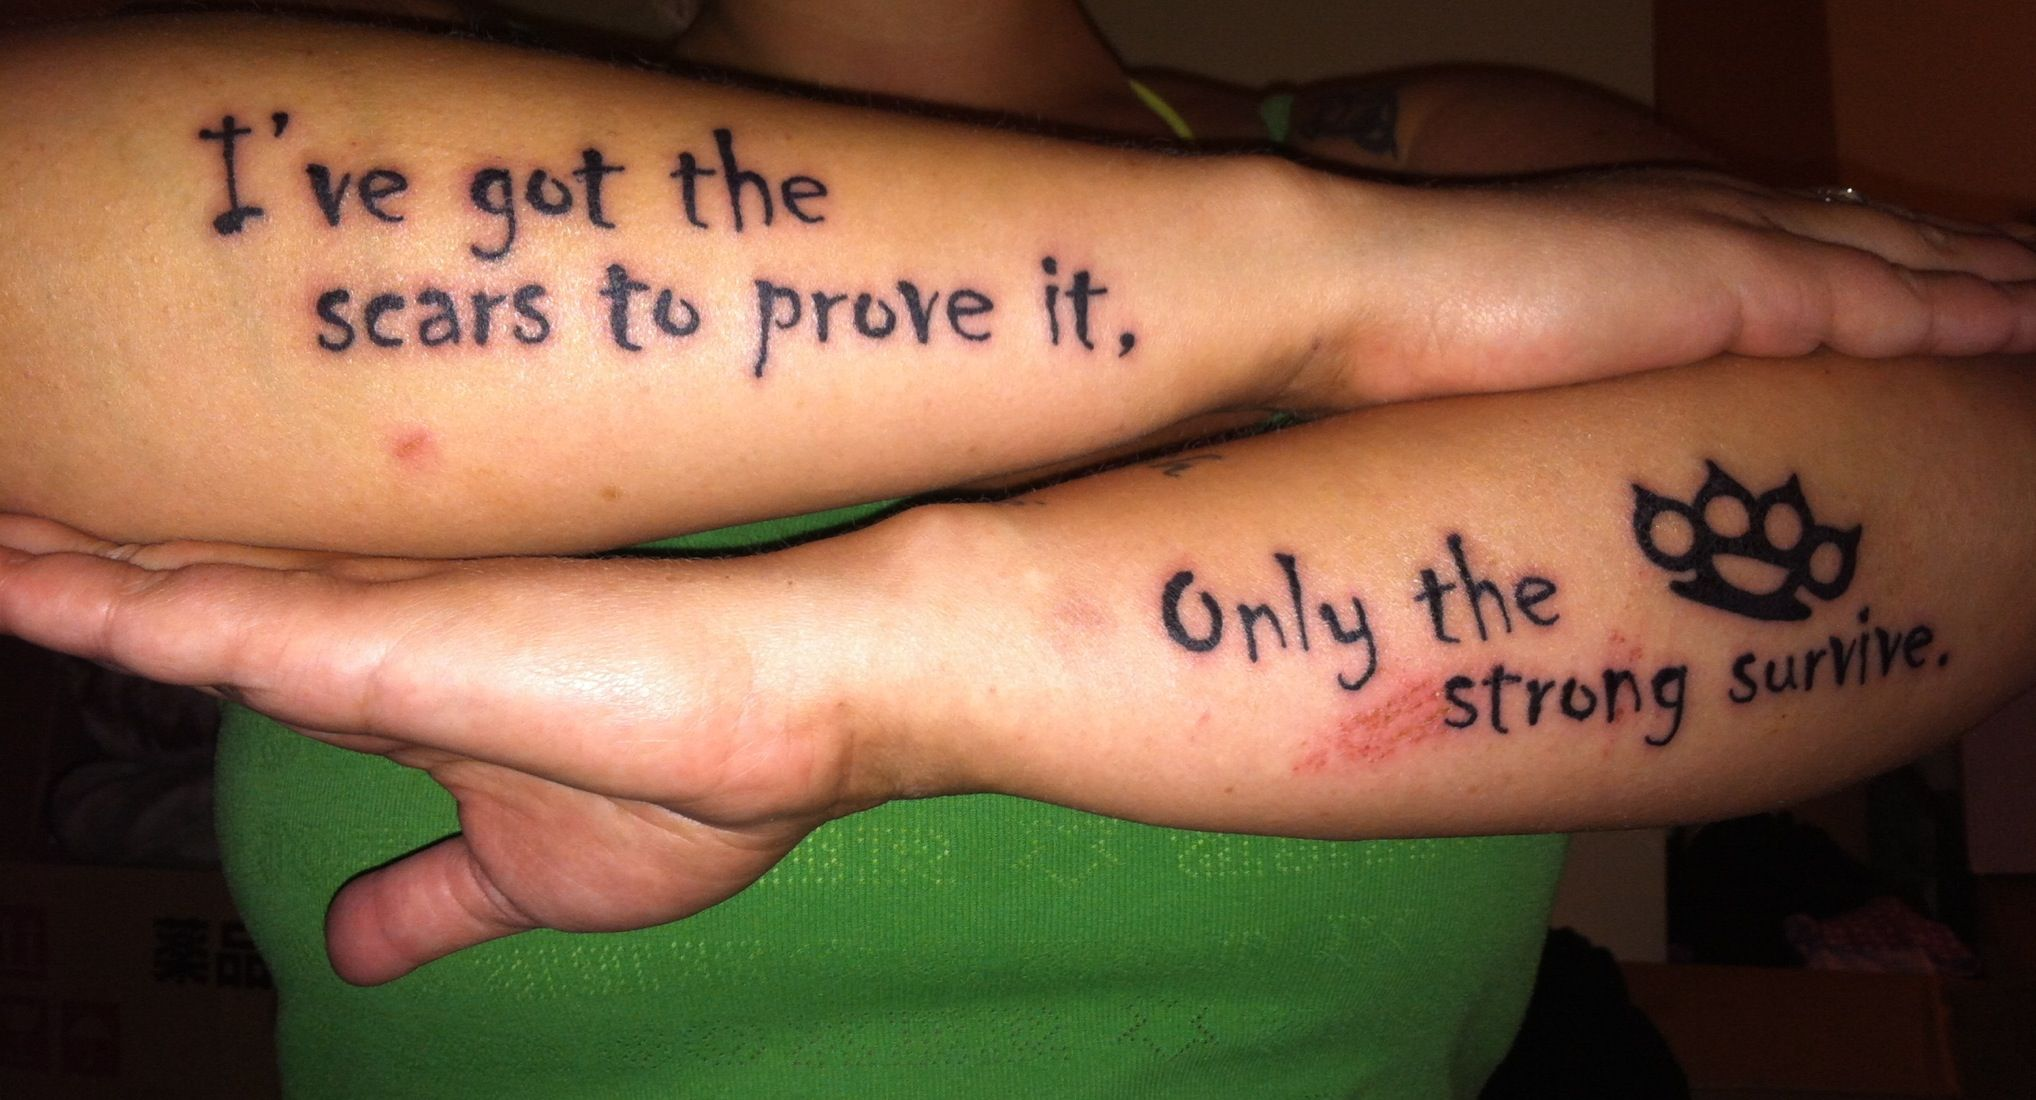 Five Finger Death Punch Lyric Tattoo From The Pride Tattoos